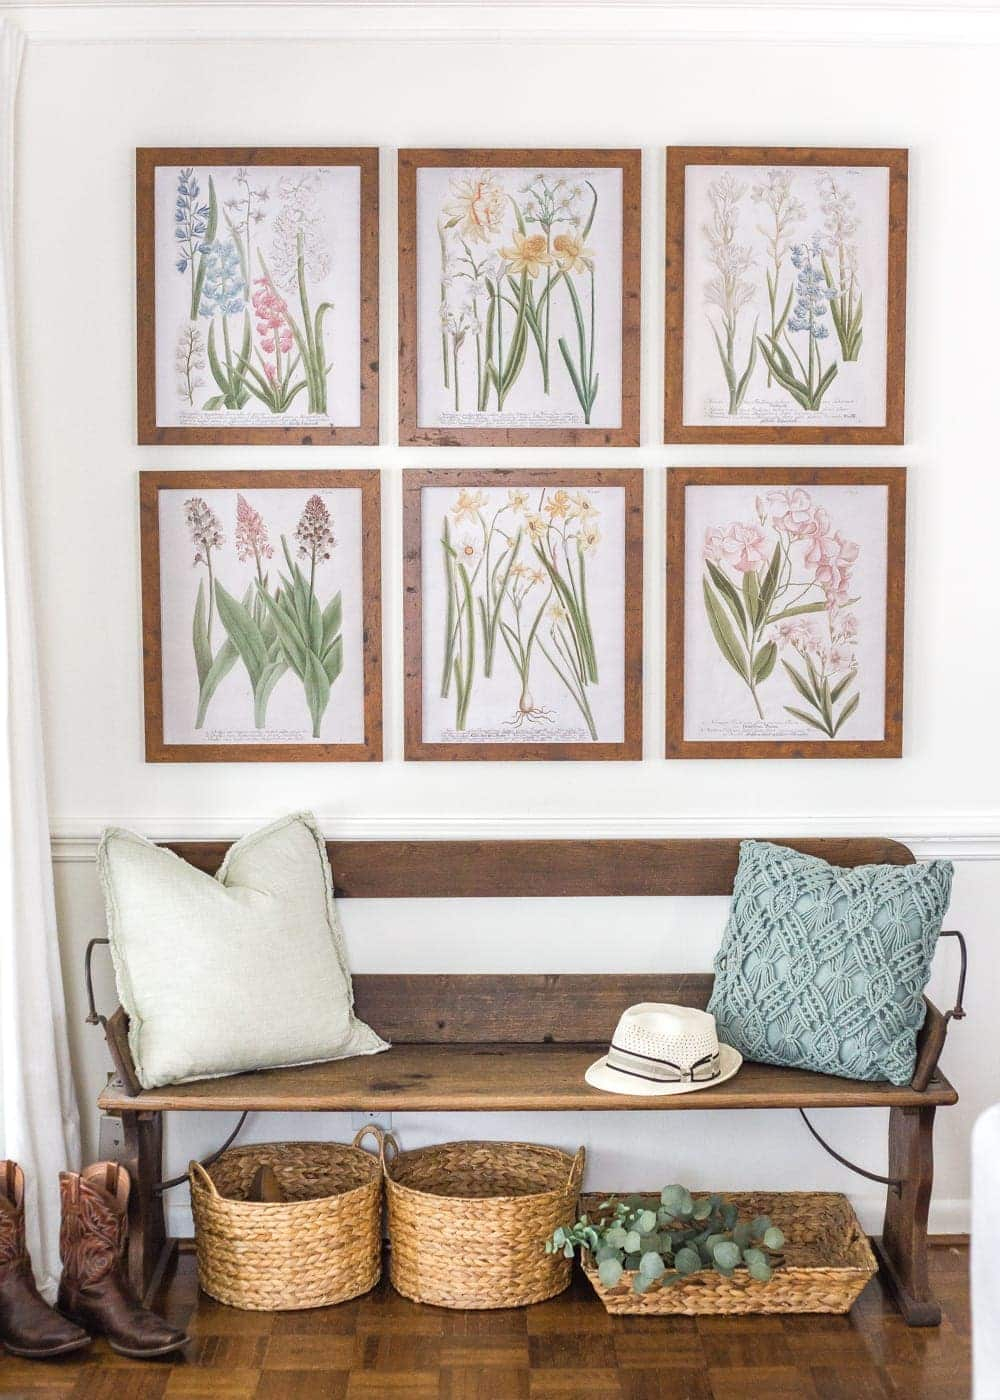 Simple Spring Home Tour | Craigslist bench with baskets underneath for a makeshift mud room and free botanical prints for spring.